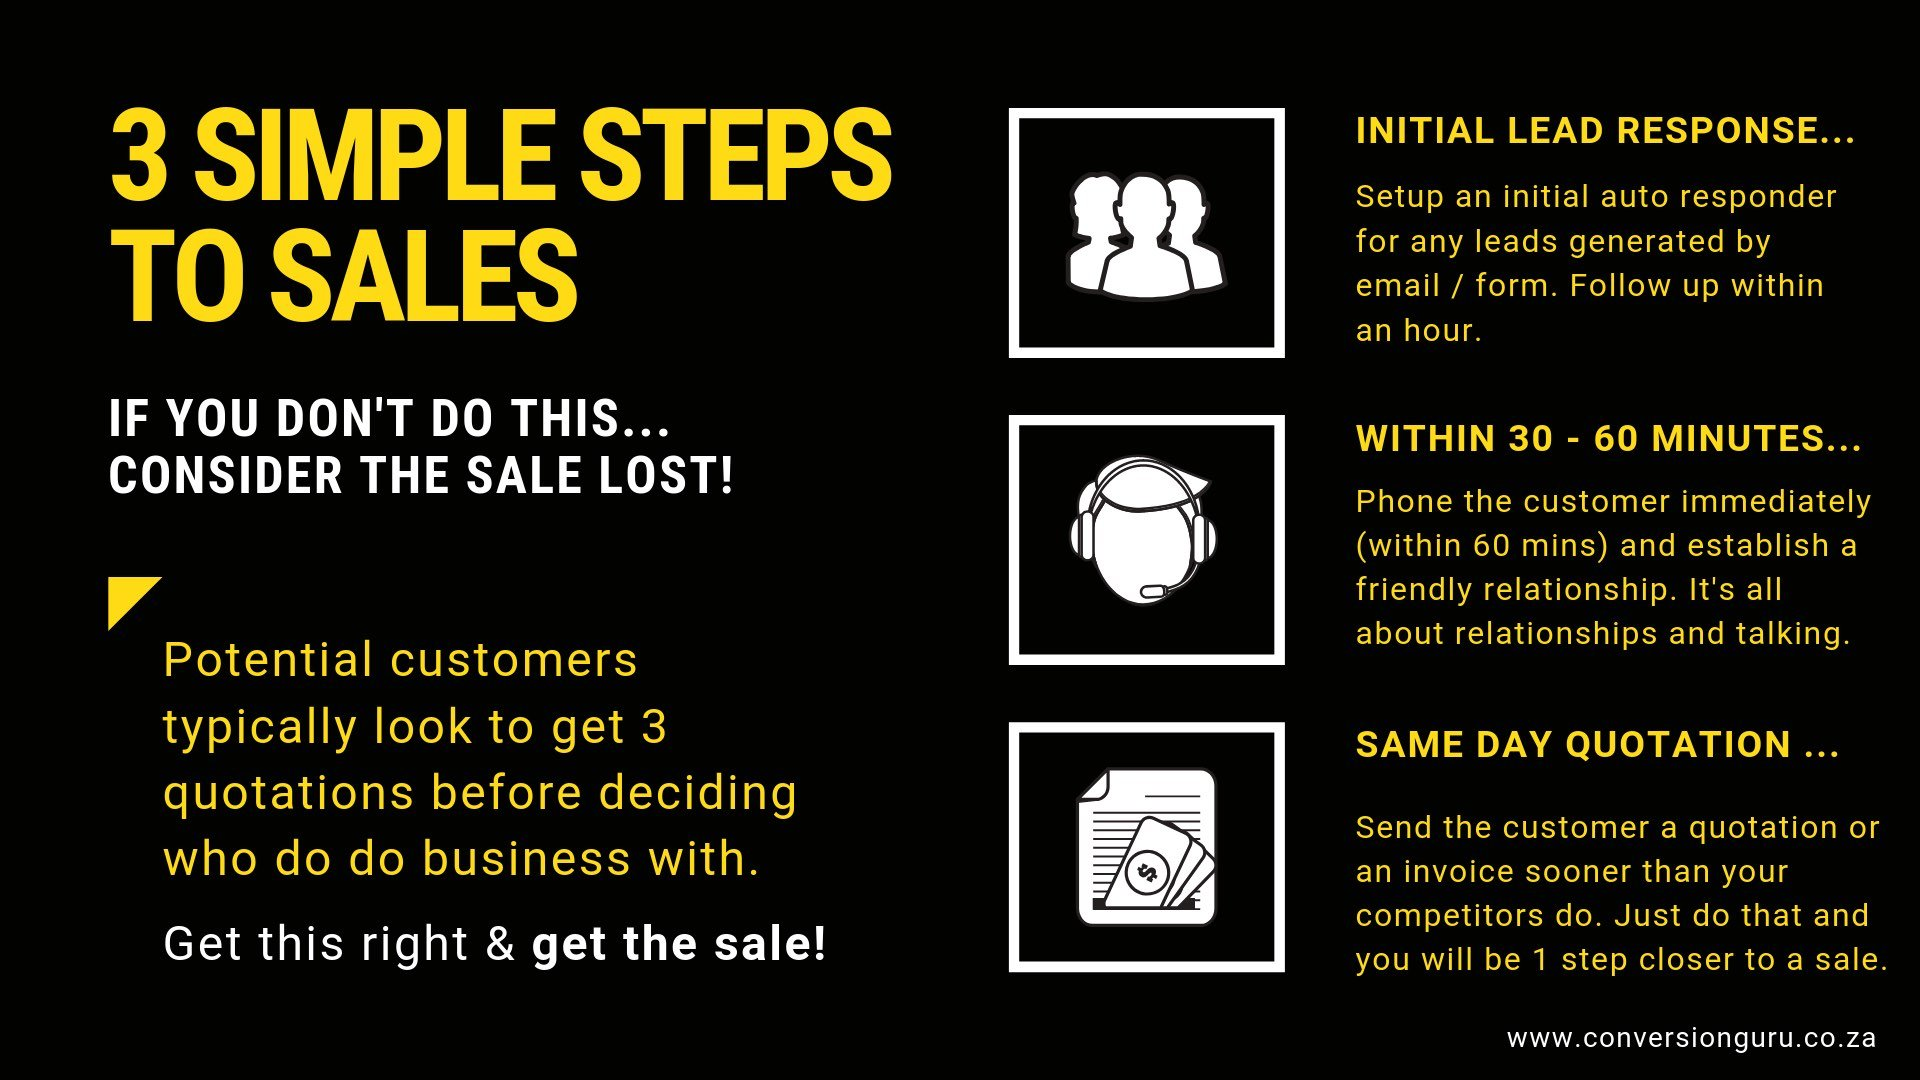 3 simple steps to sales 2